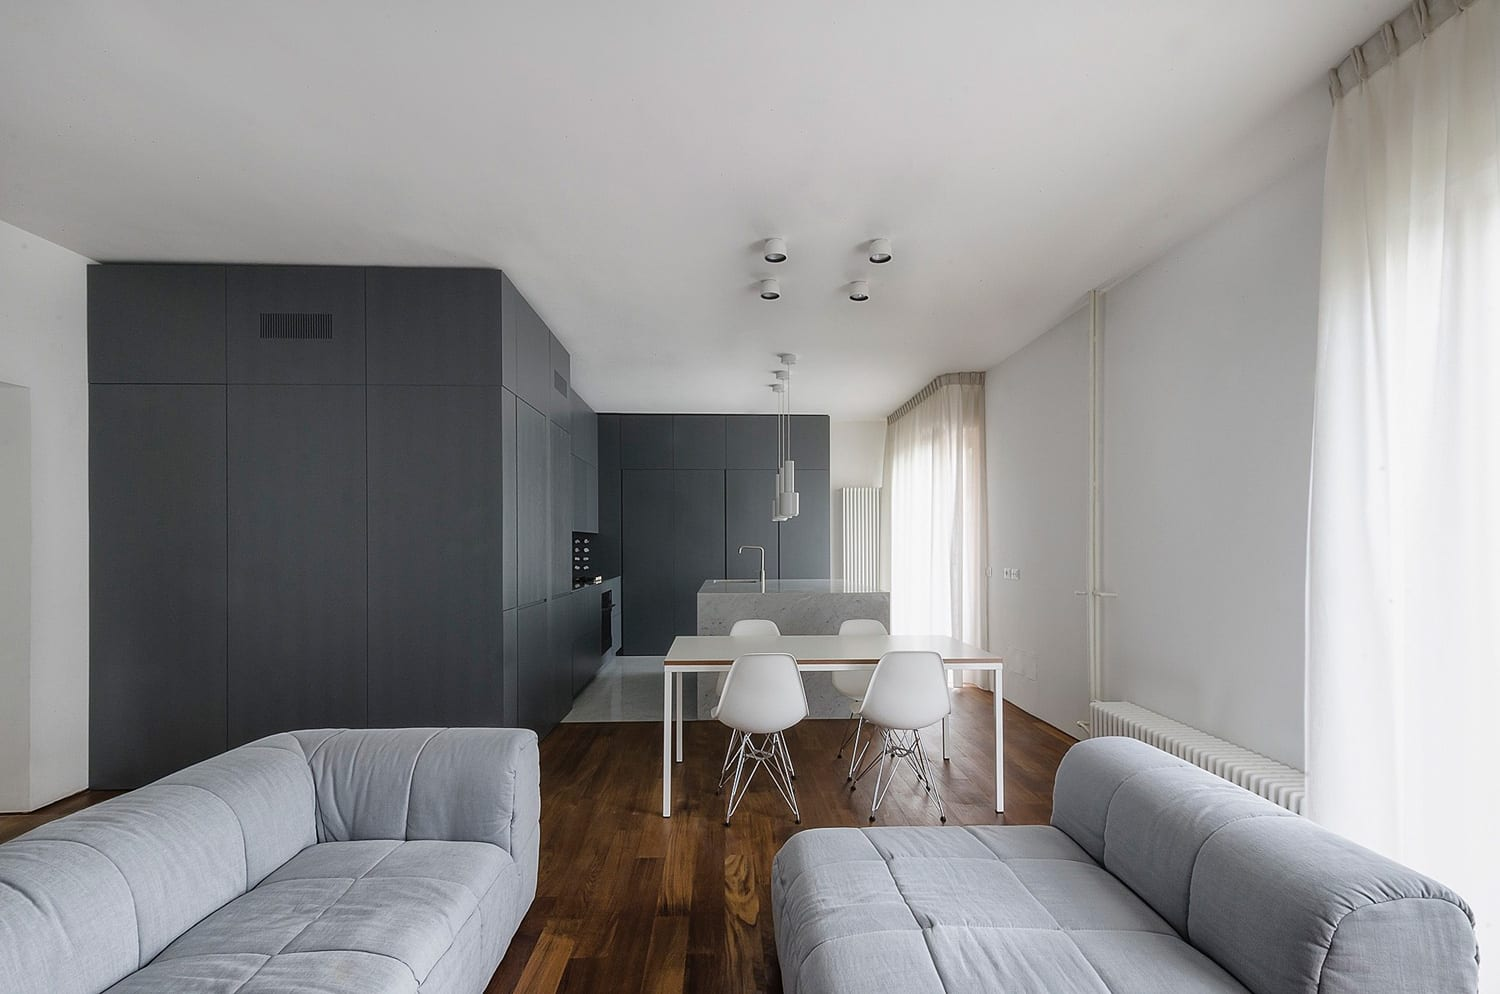 Apartment in Pisa by SUNDAYMORNING | Yellowtrace